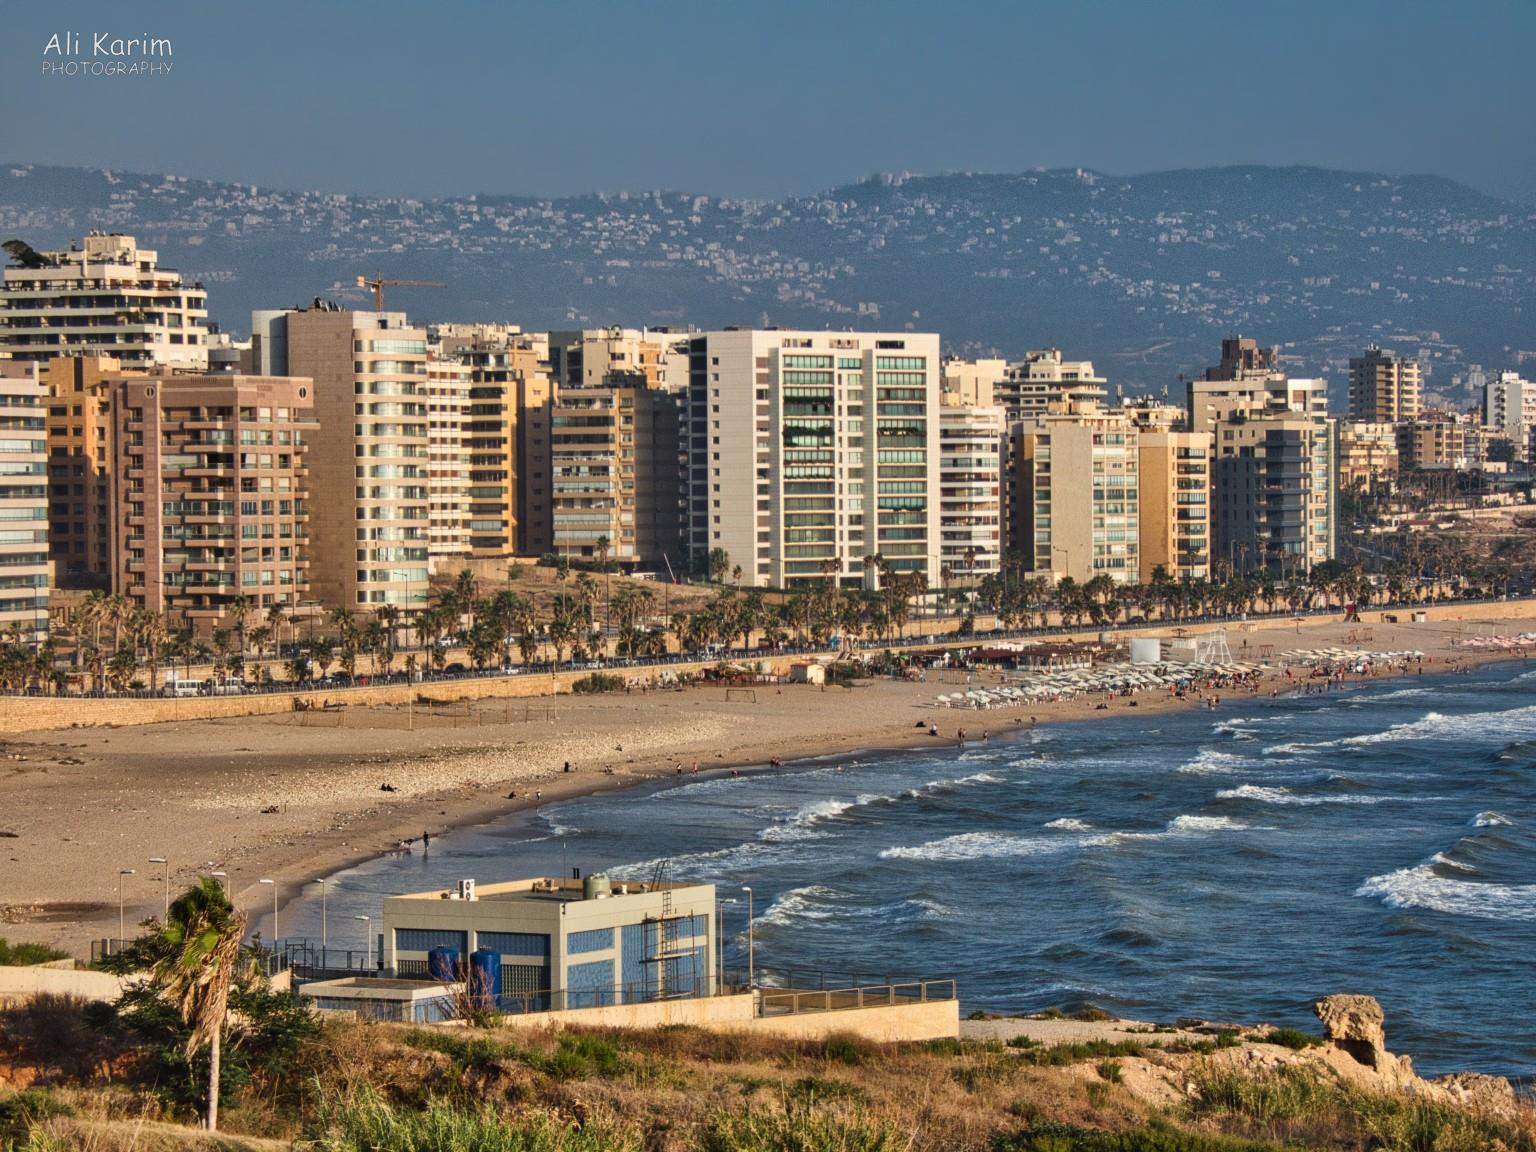 Beirut beach, and southern Beirut all over the hills in the background